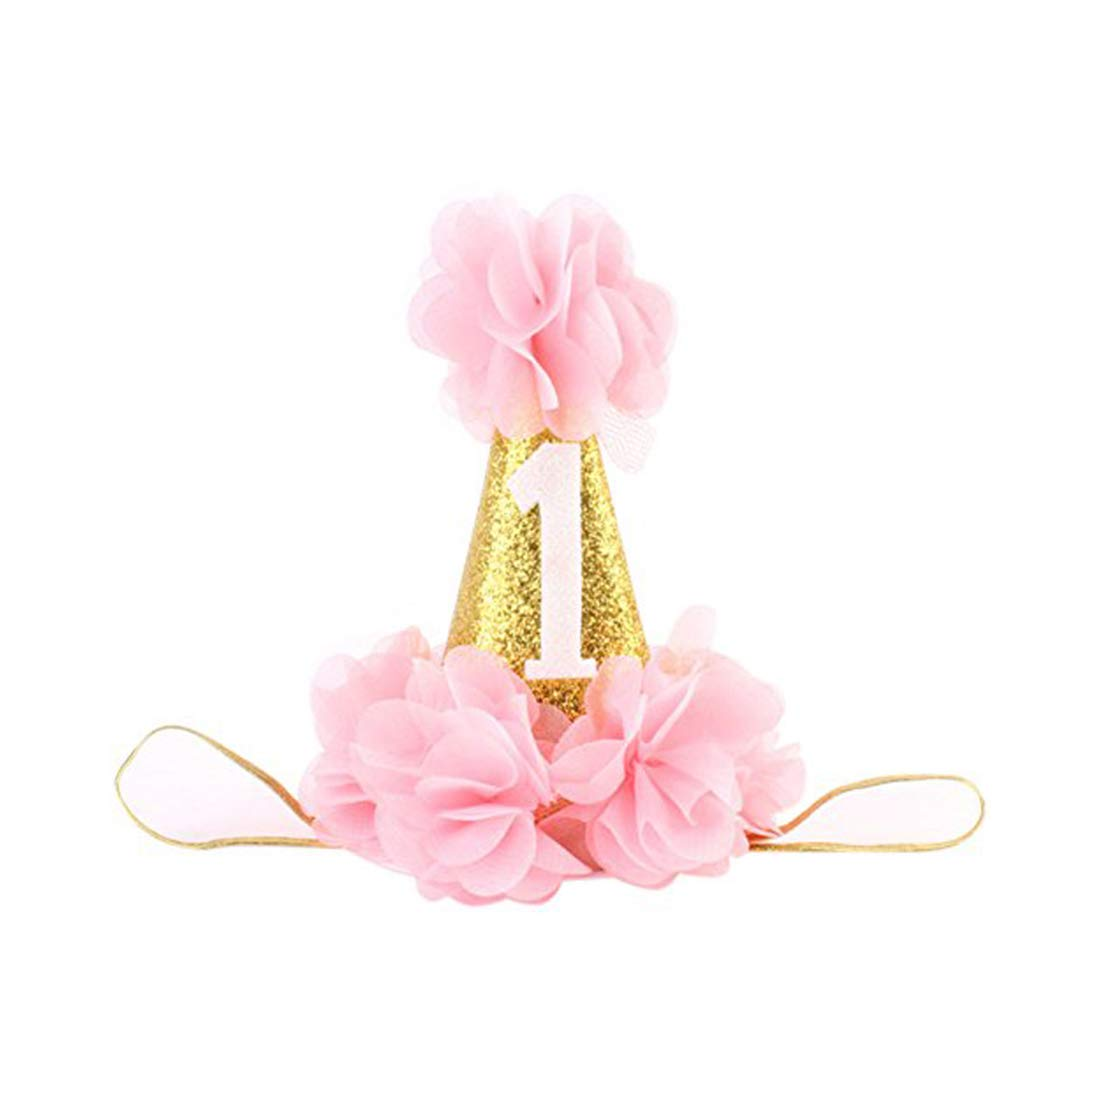 TZCER Infant Baby 1st Birthday Party Hat Princess Hairband Baby Girl Flower Delicate Hair Accessories Crown Party Hats, Pink, Small